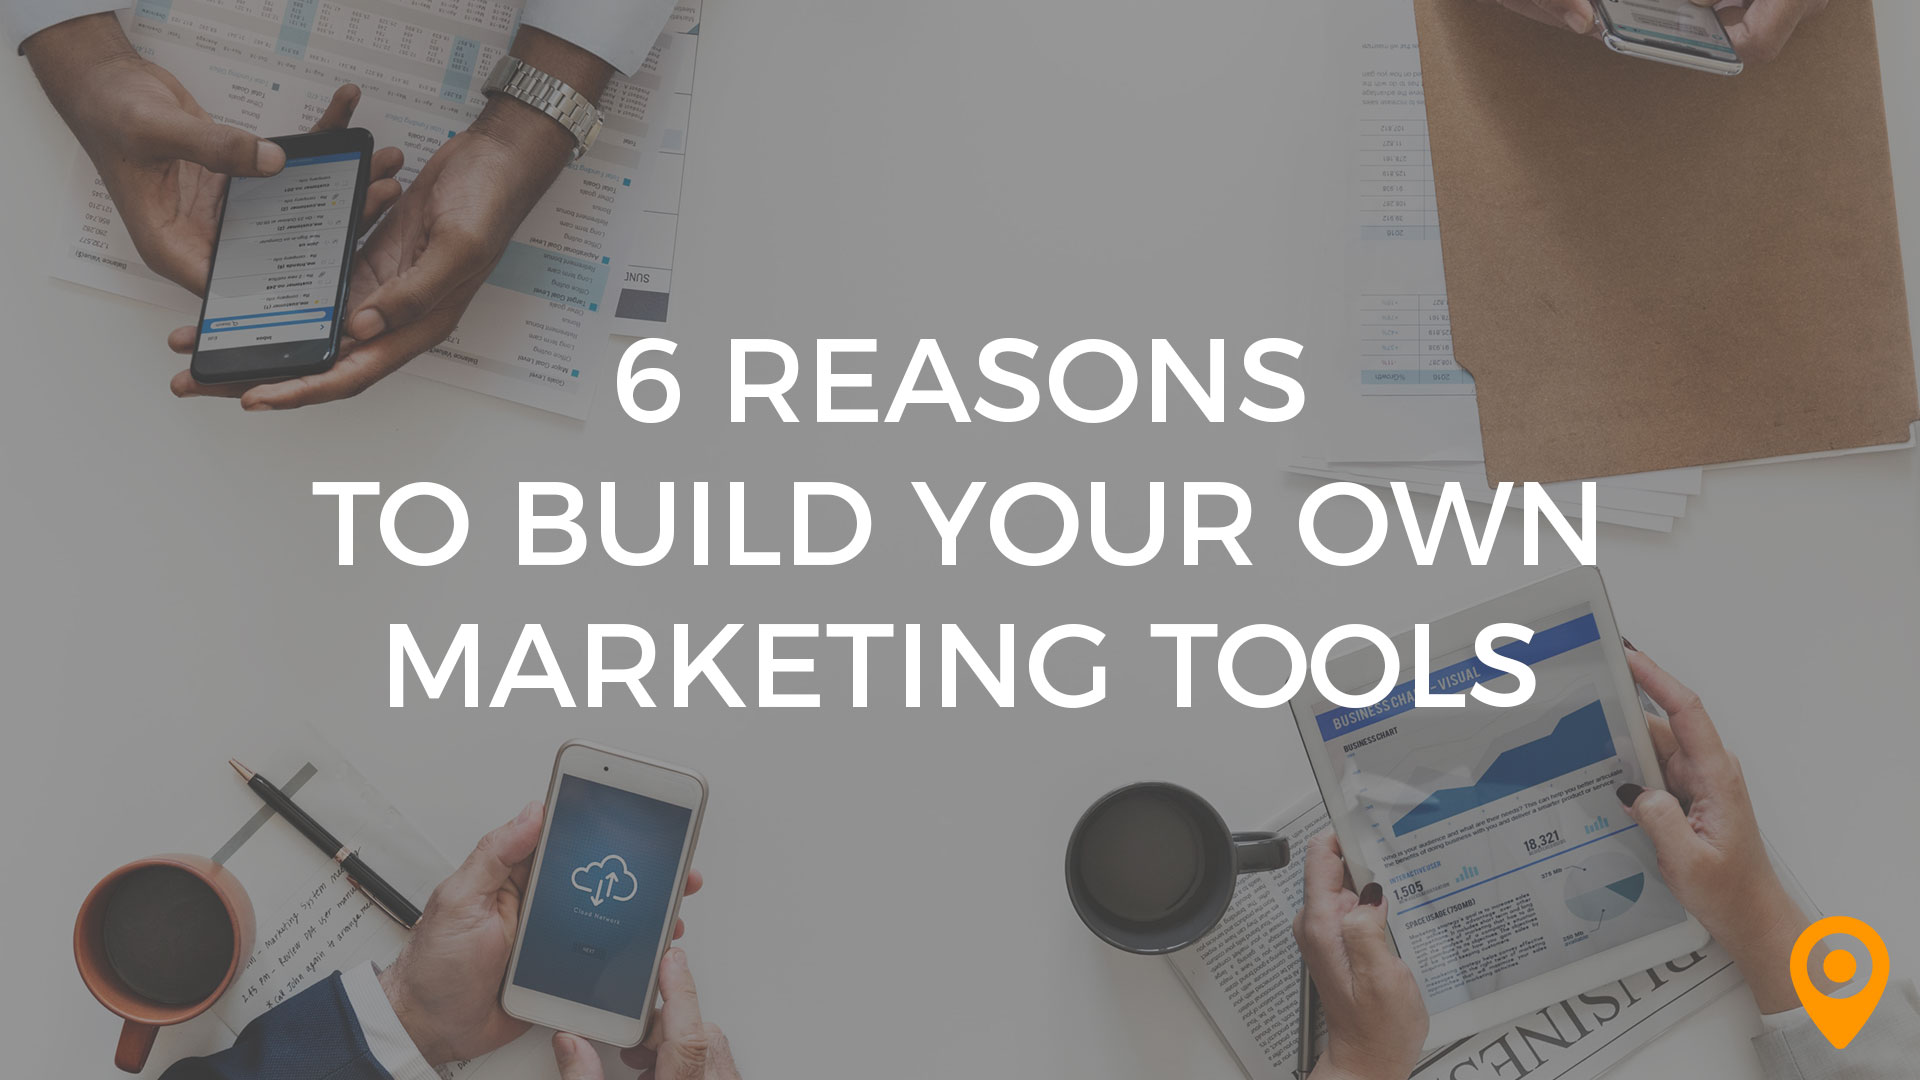 Reasons to Build Your Own Marketing Tools